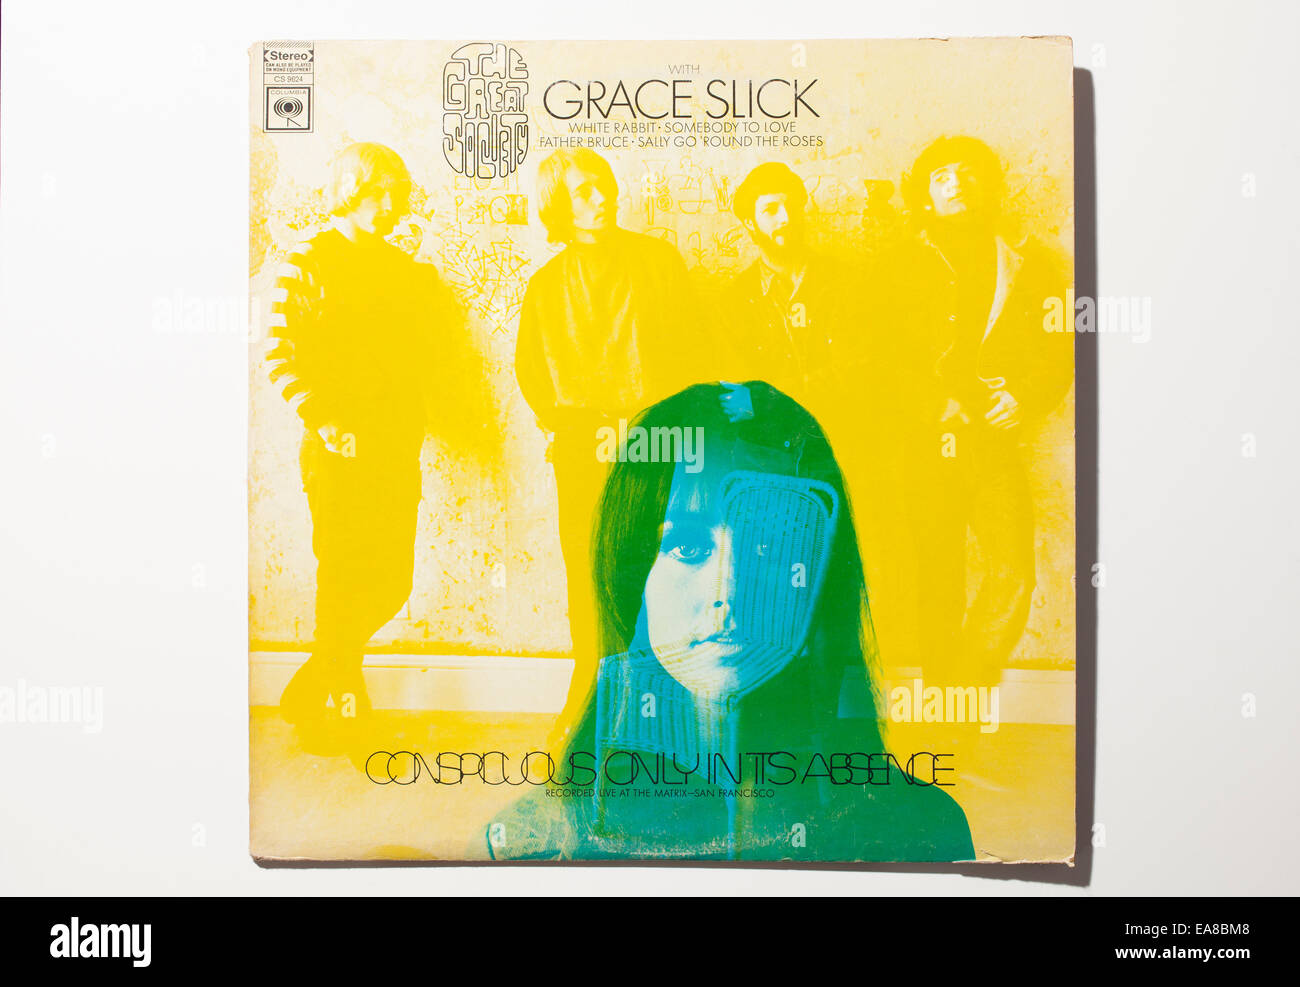 Conspicuous Only In Its Absence album with Grace Slick singing with Great Society. 1968 release. - Stock Image